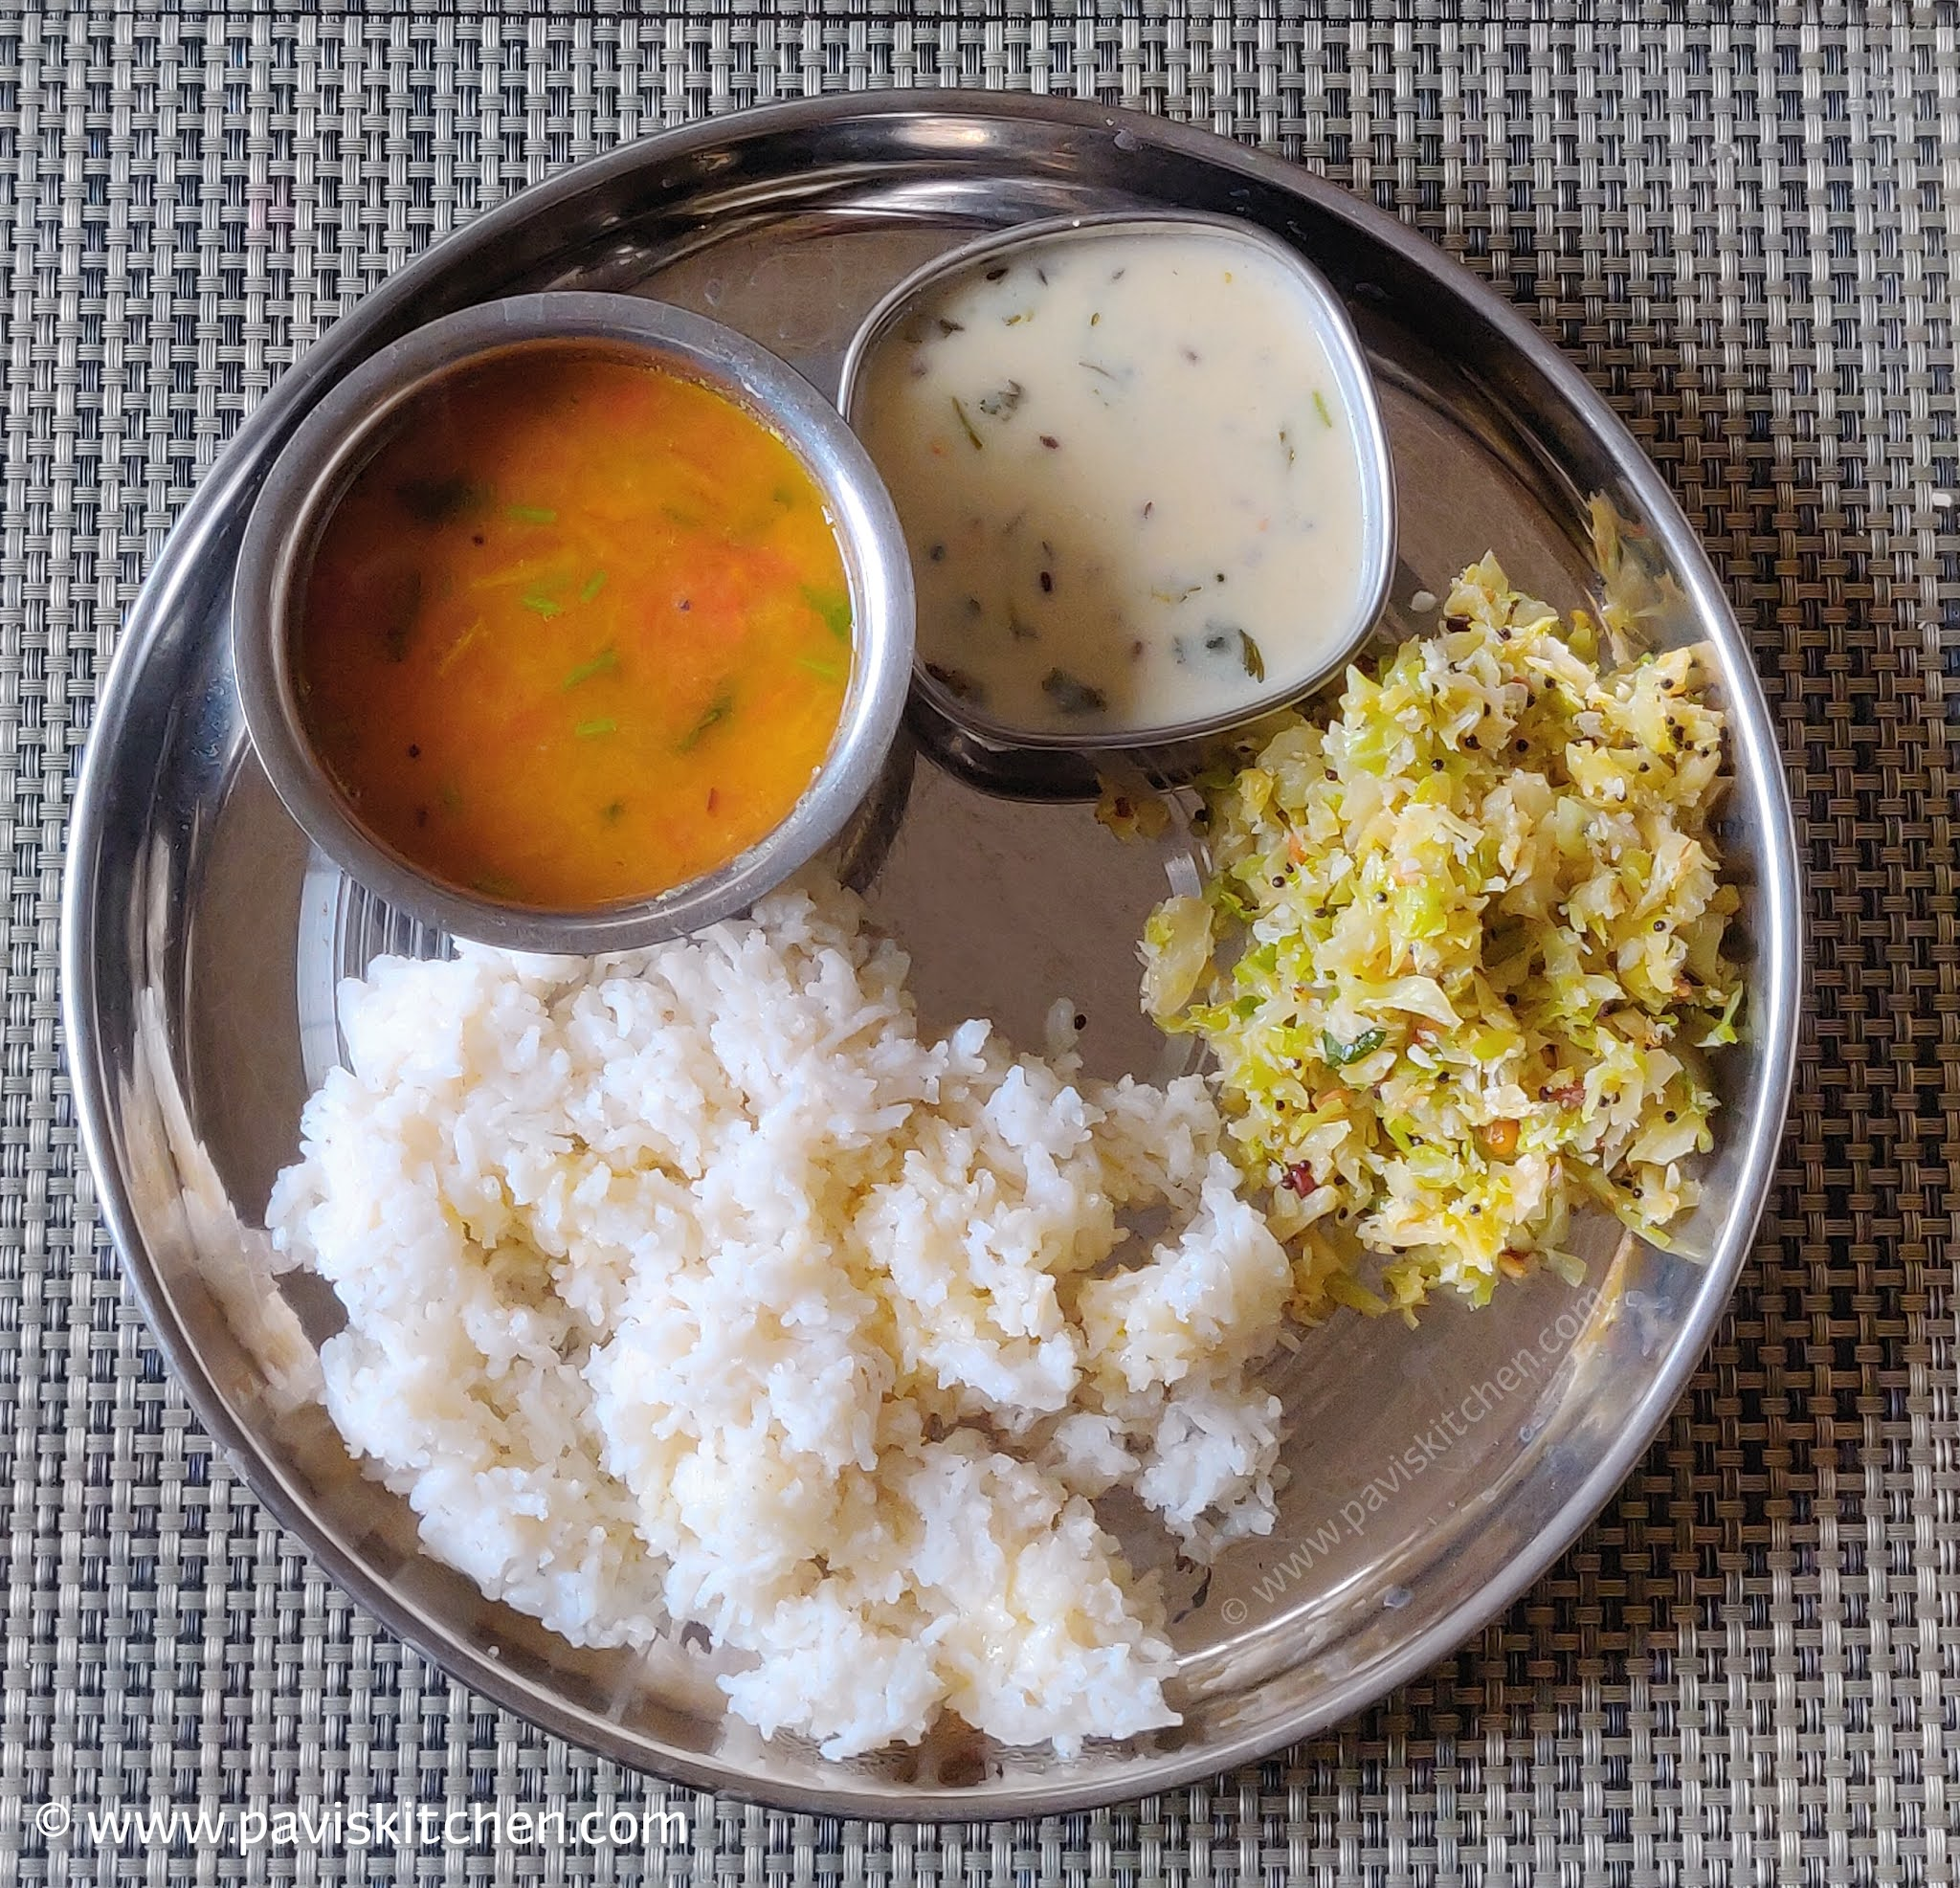 Satvik thali recipes | South Indian lunch thali recipes | Satvik food recipes | Veg Indian thali menu recipe with detailed step by step pictures and procedures.